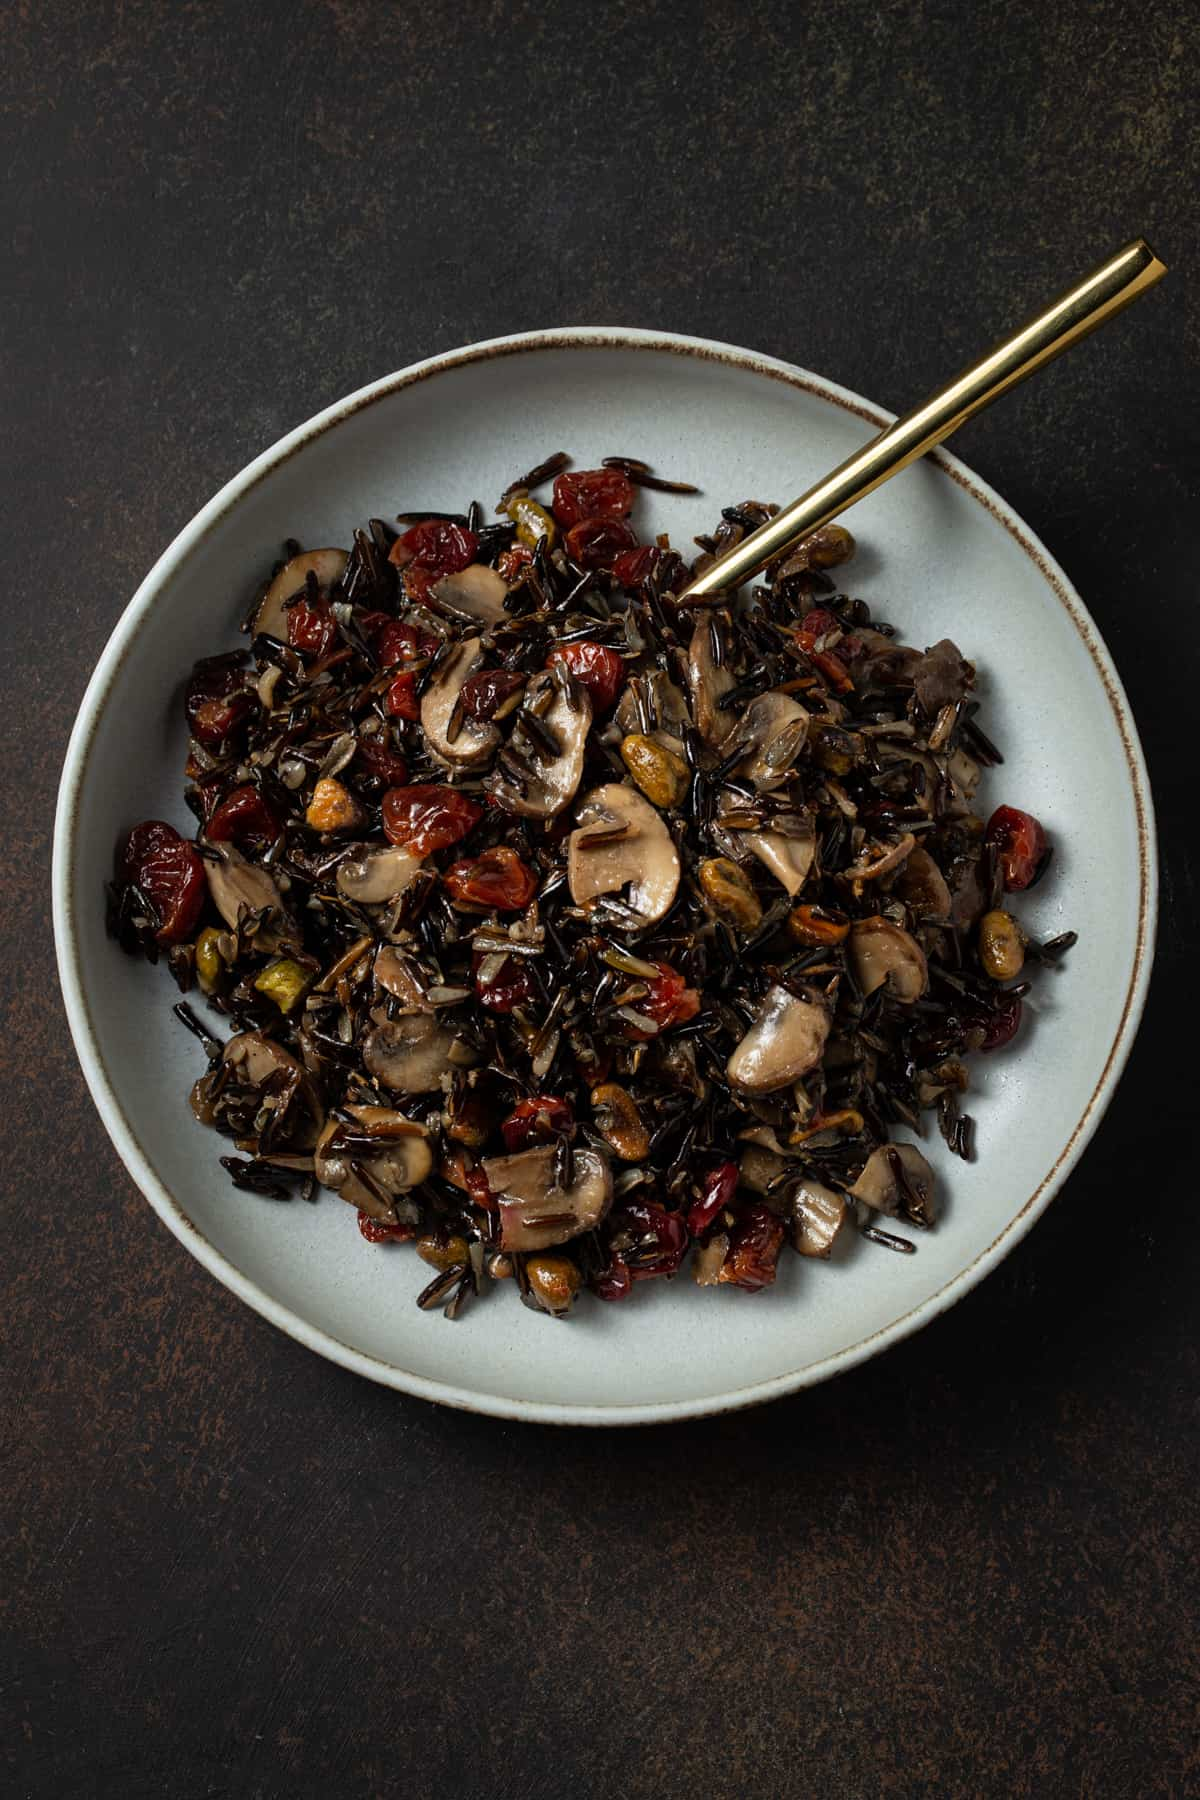 Gray bowl filled with cooked wild rice, mushrooms, cherries & pistachios.